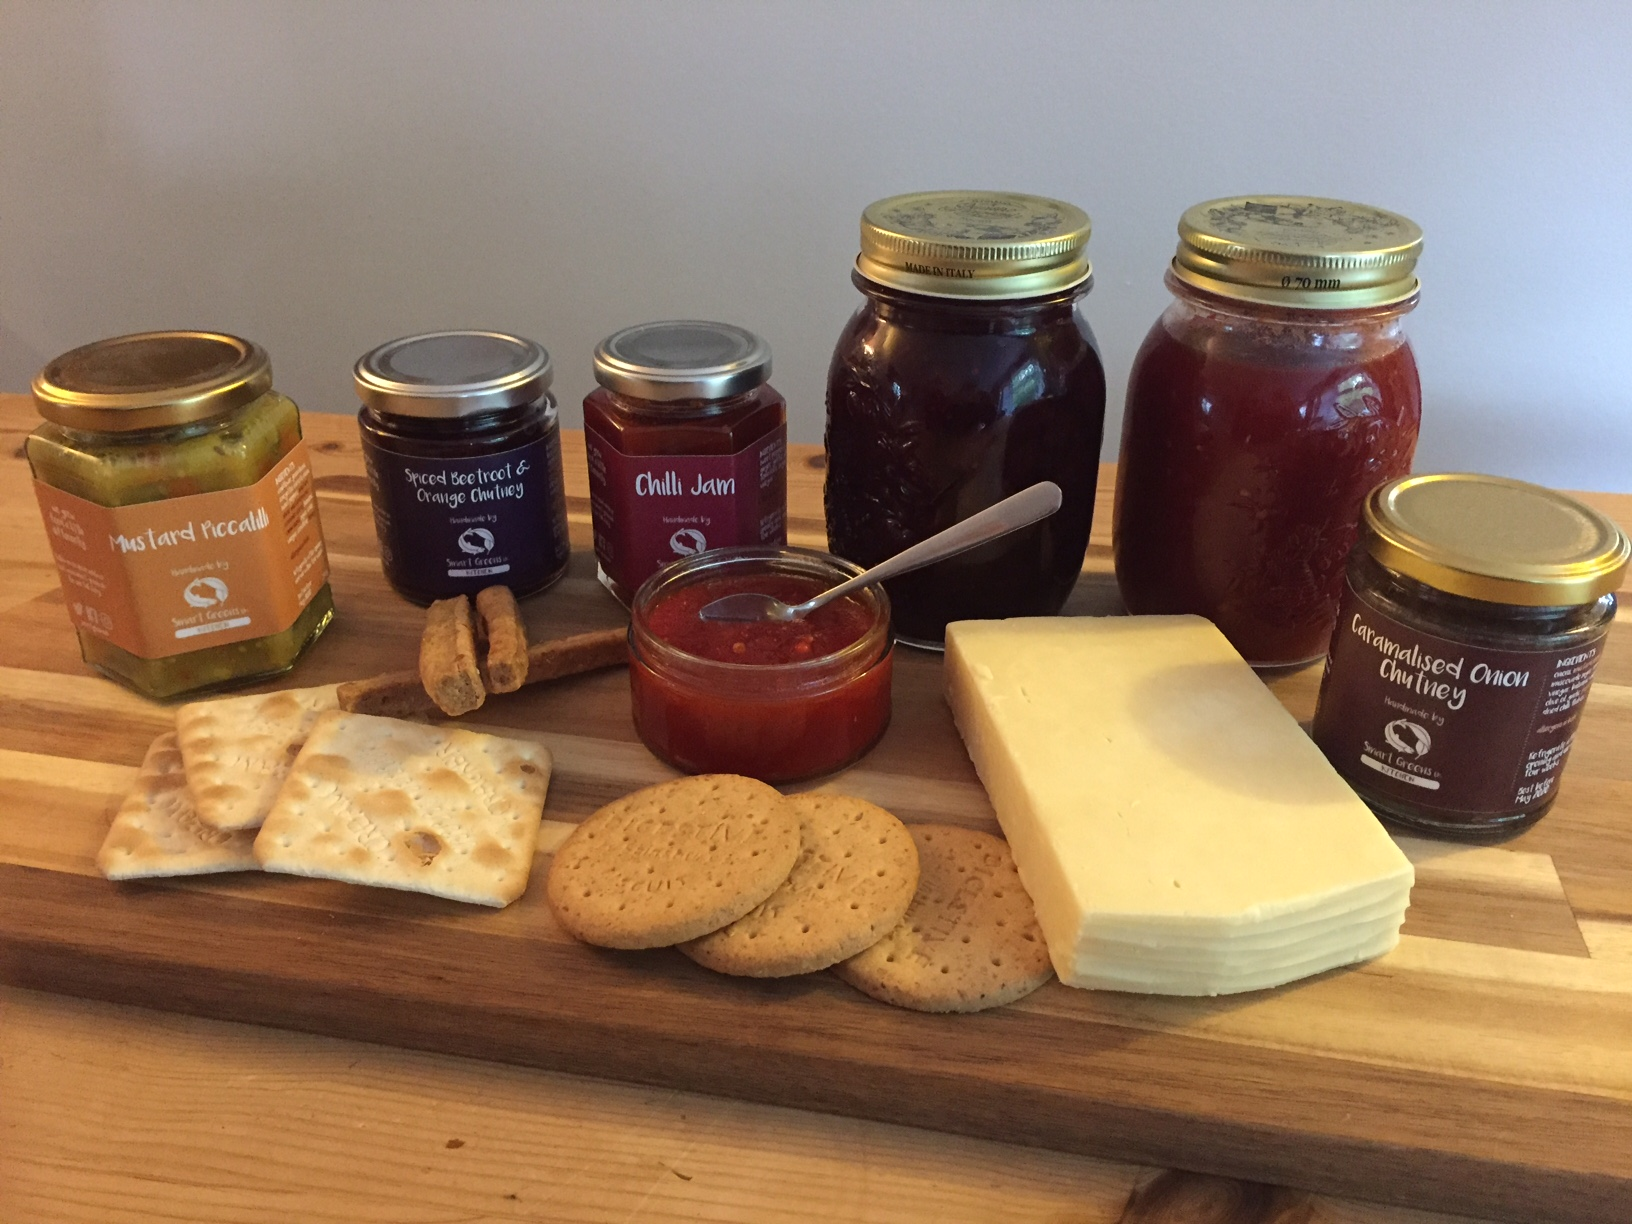 Handmade Artisan Chutneys and Jams